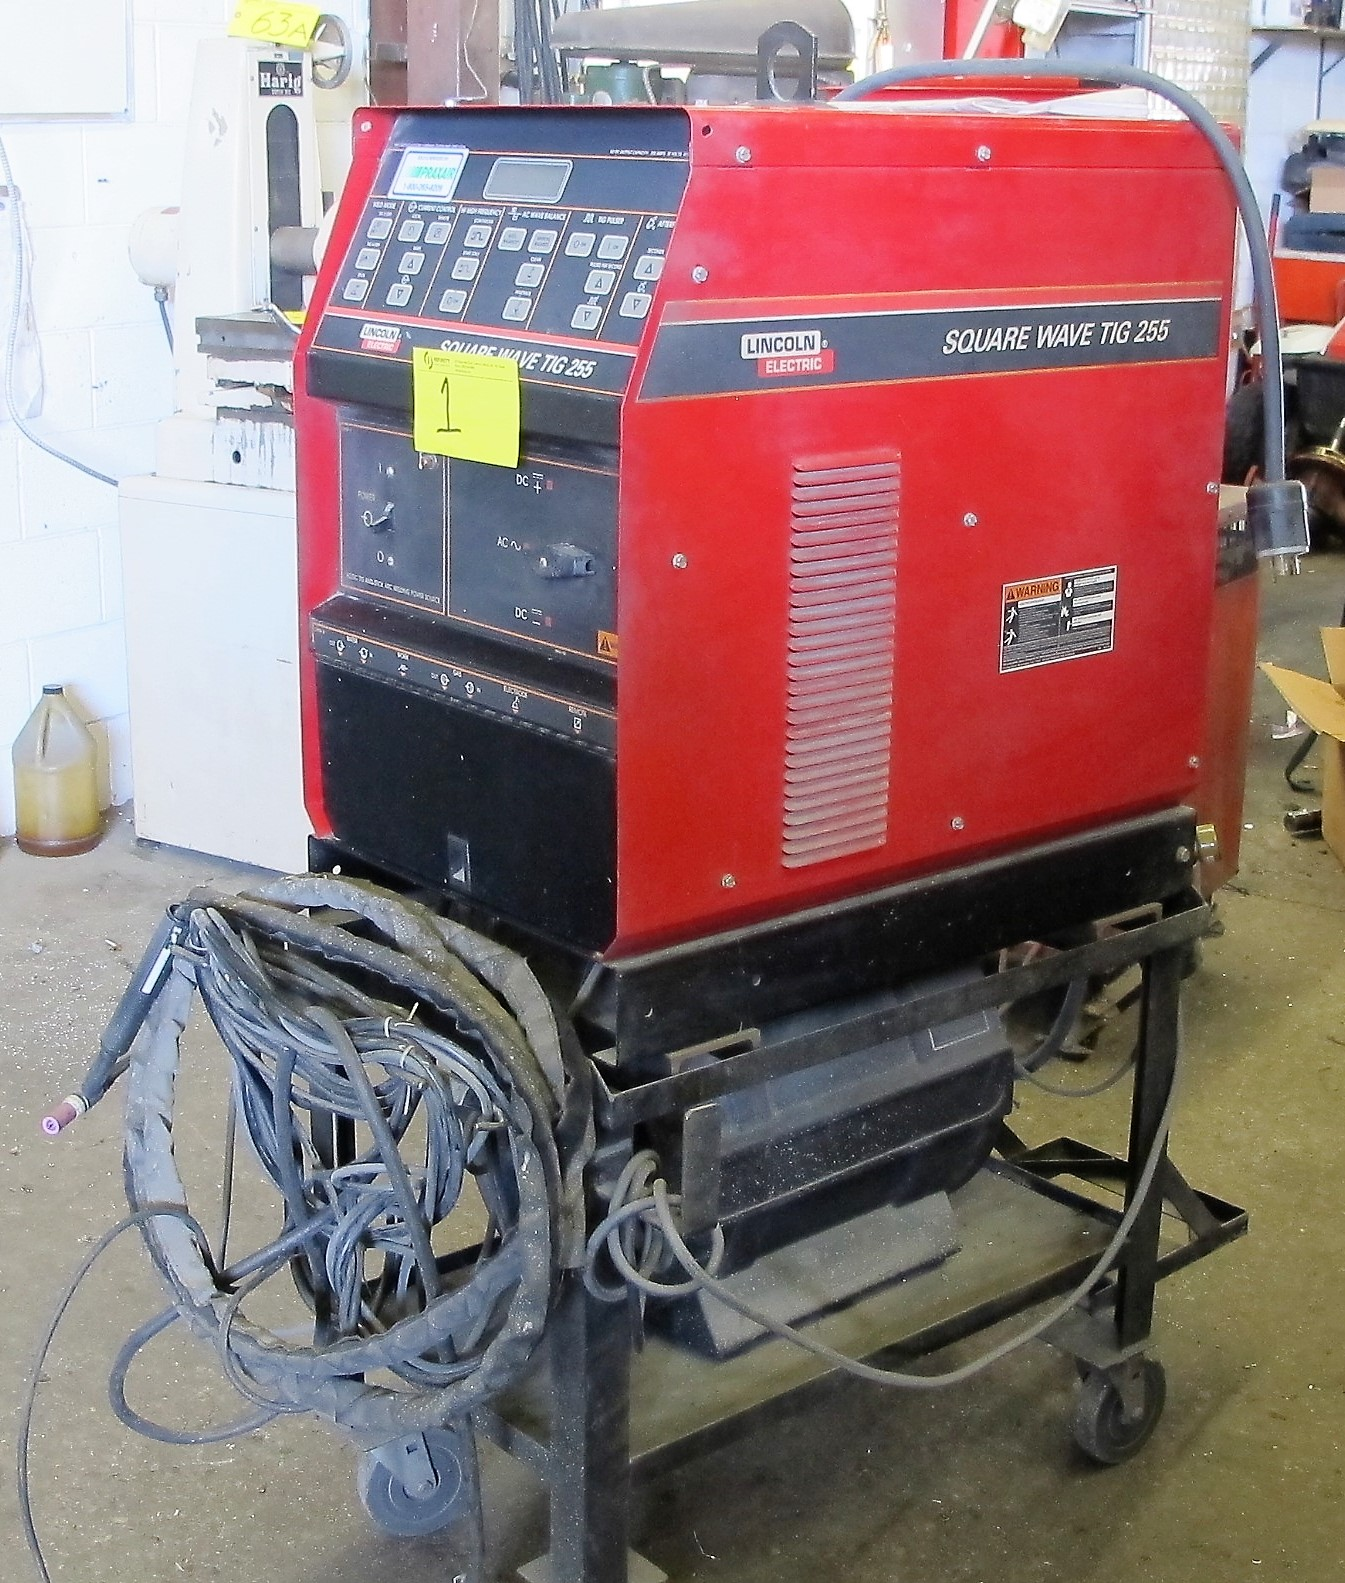 LINCOLN ELECTRIC SQUARE WAVE TIG 255 WELDER W/LA105939 COOLING SYSTEM, CART AND CABLES - Image 4 of 4